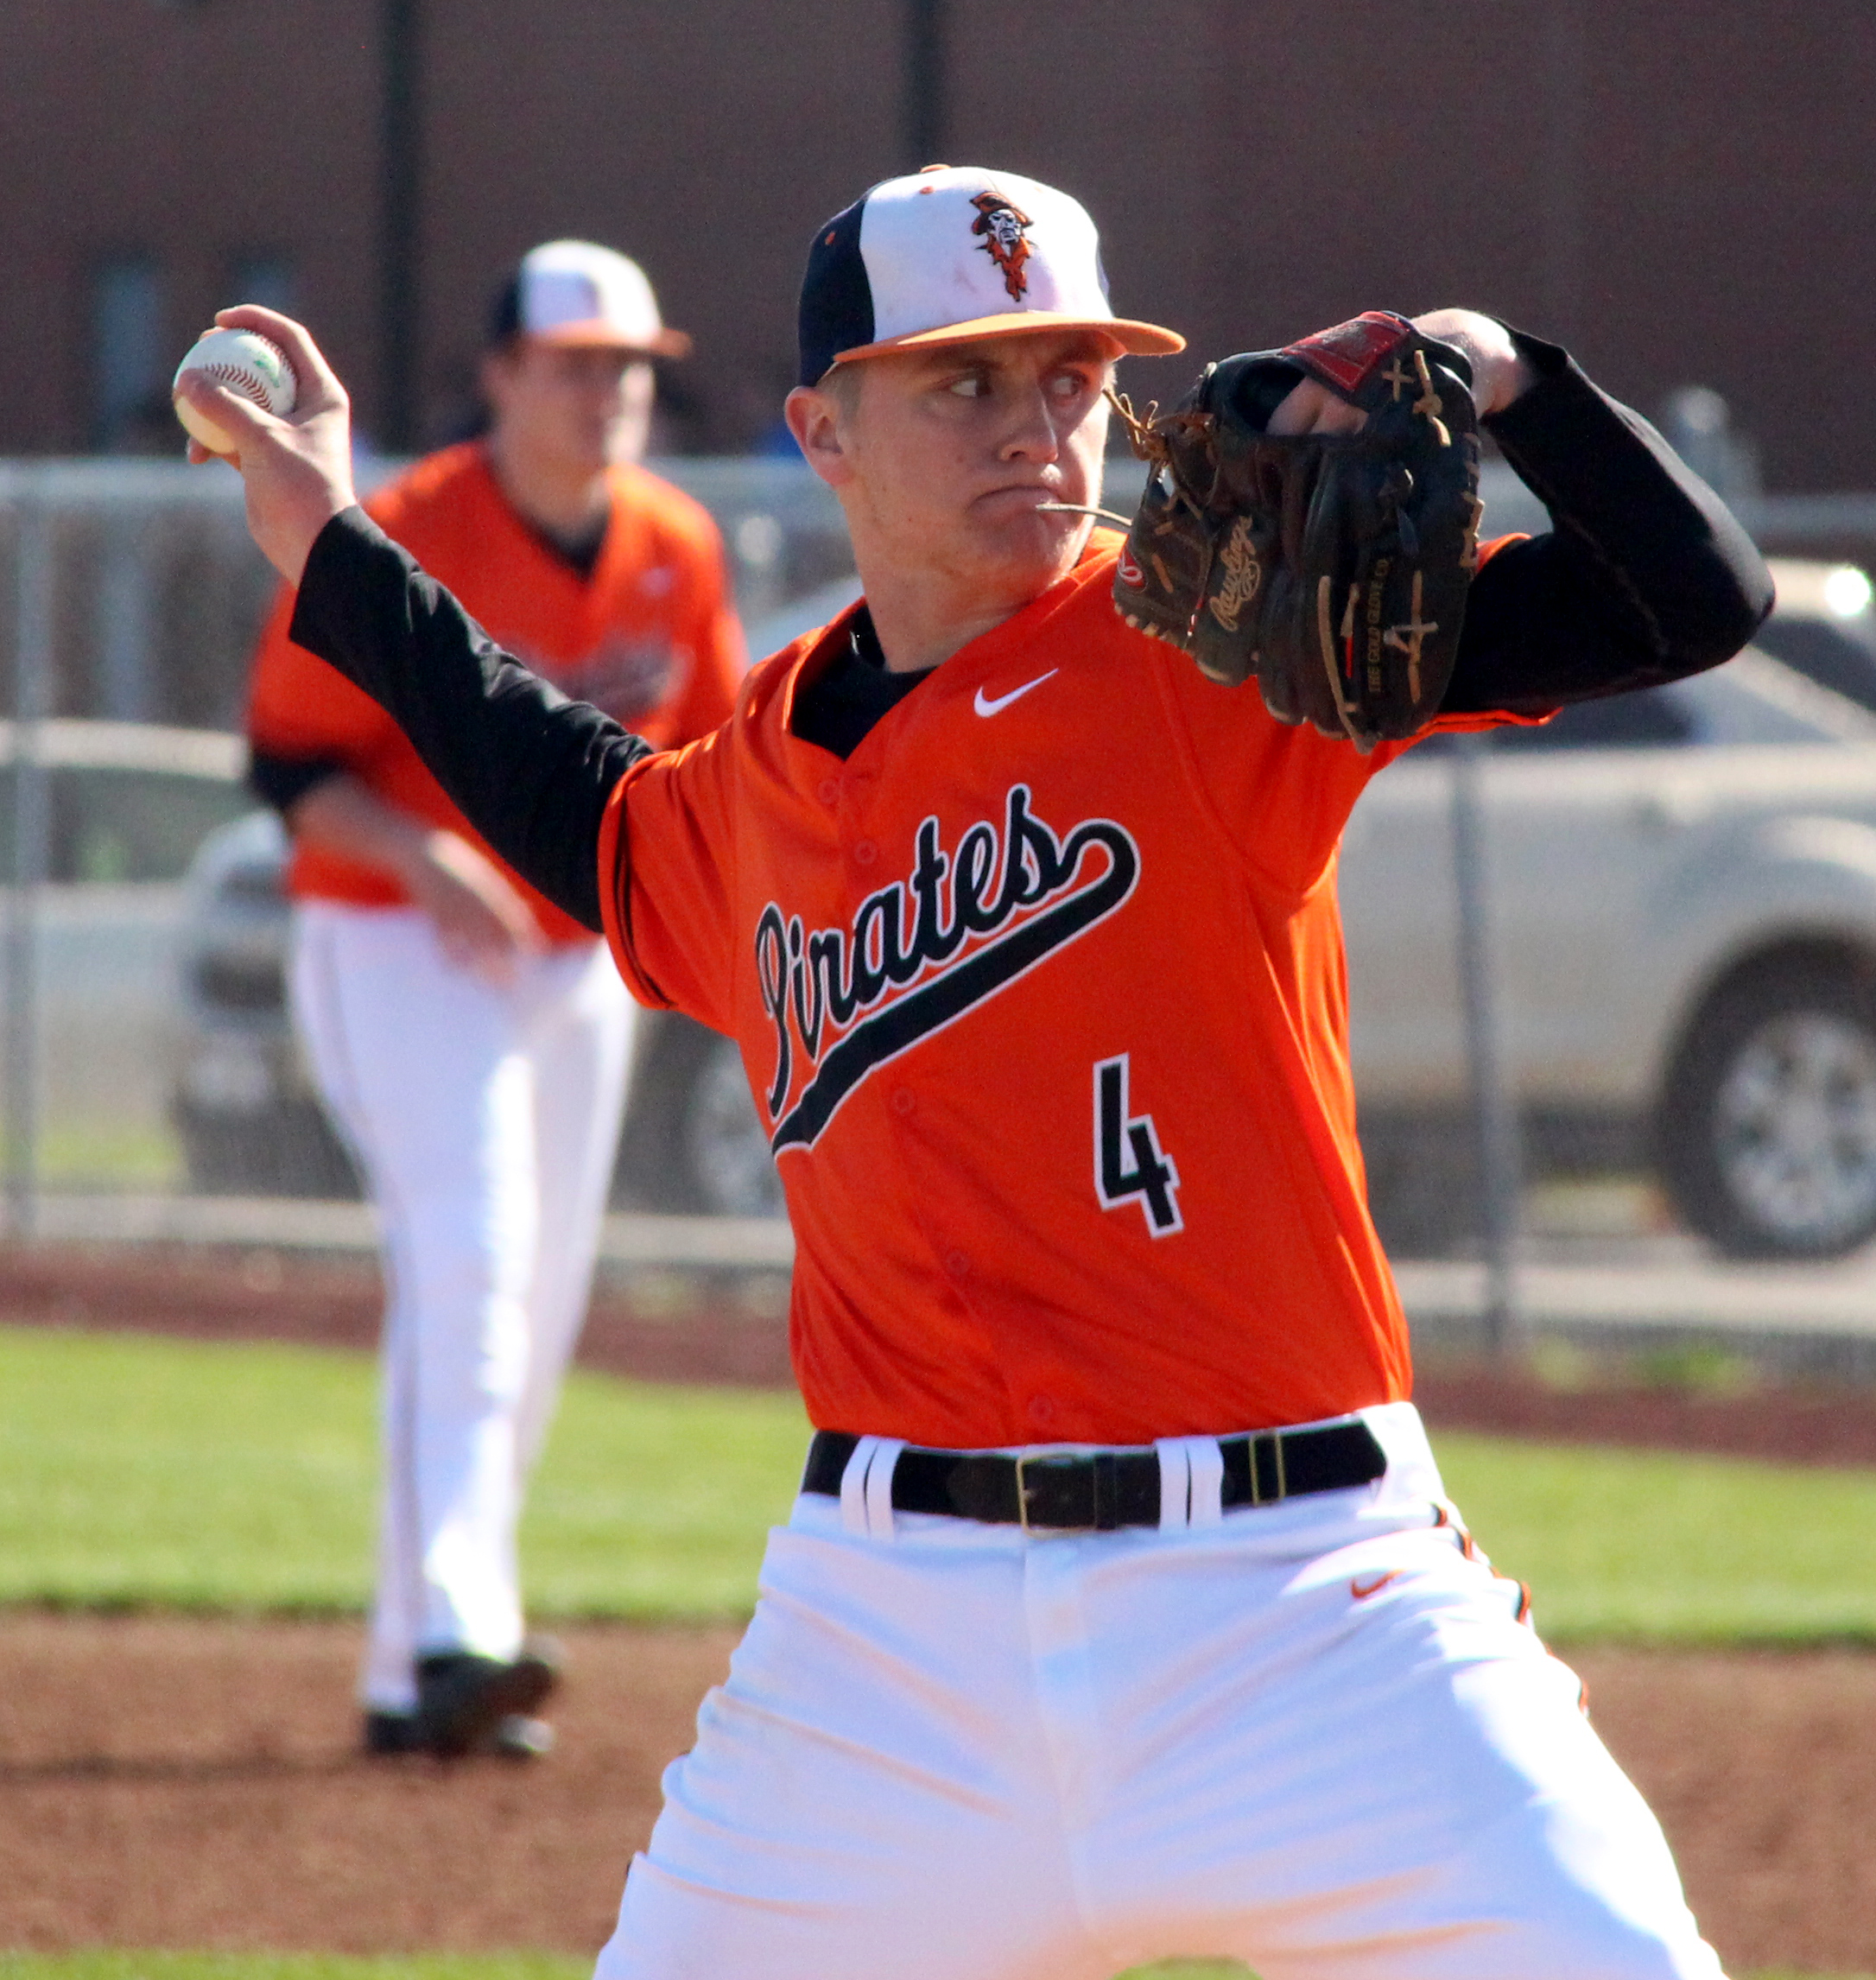 ROSS MARTIN/Citizen photos Platte County junior Jared Wilson delivers a pitch in a game against Oak Grove on Monday, March 28 at Platte County high School.